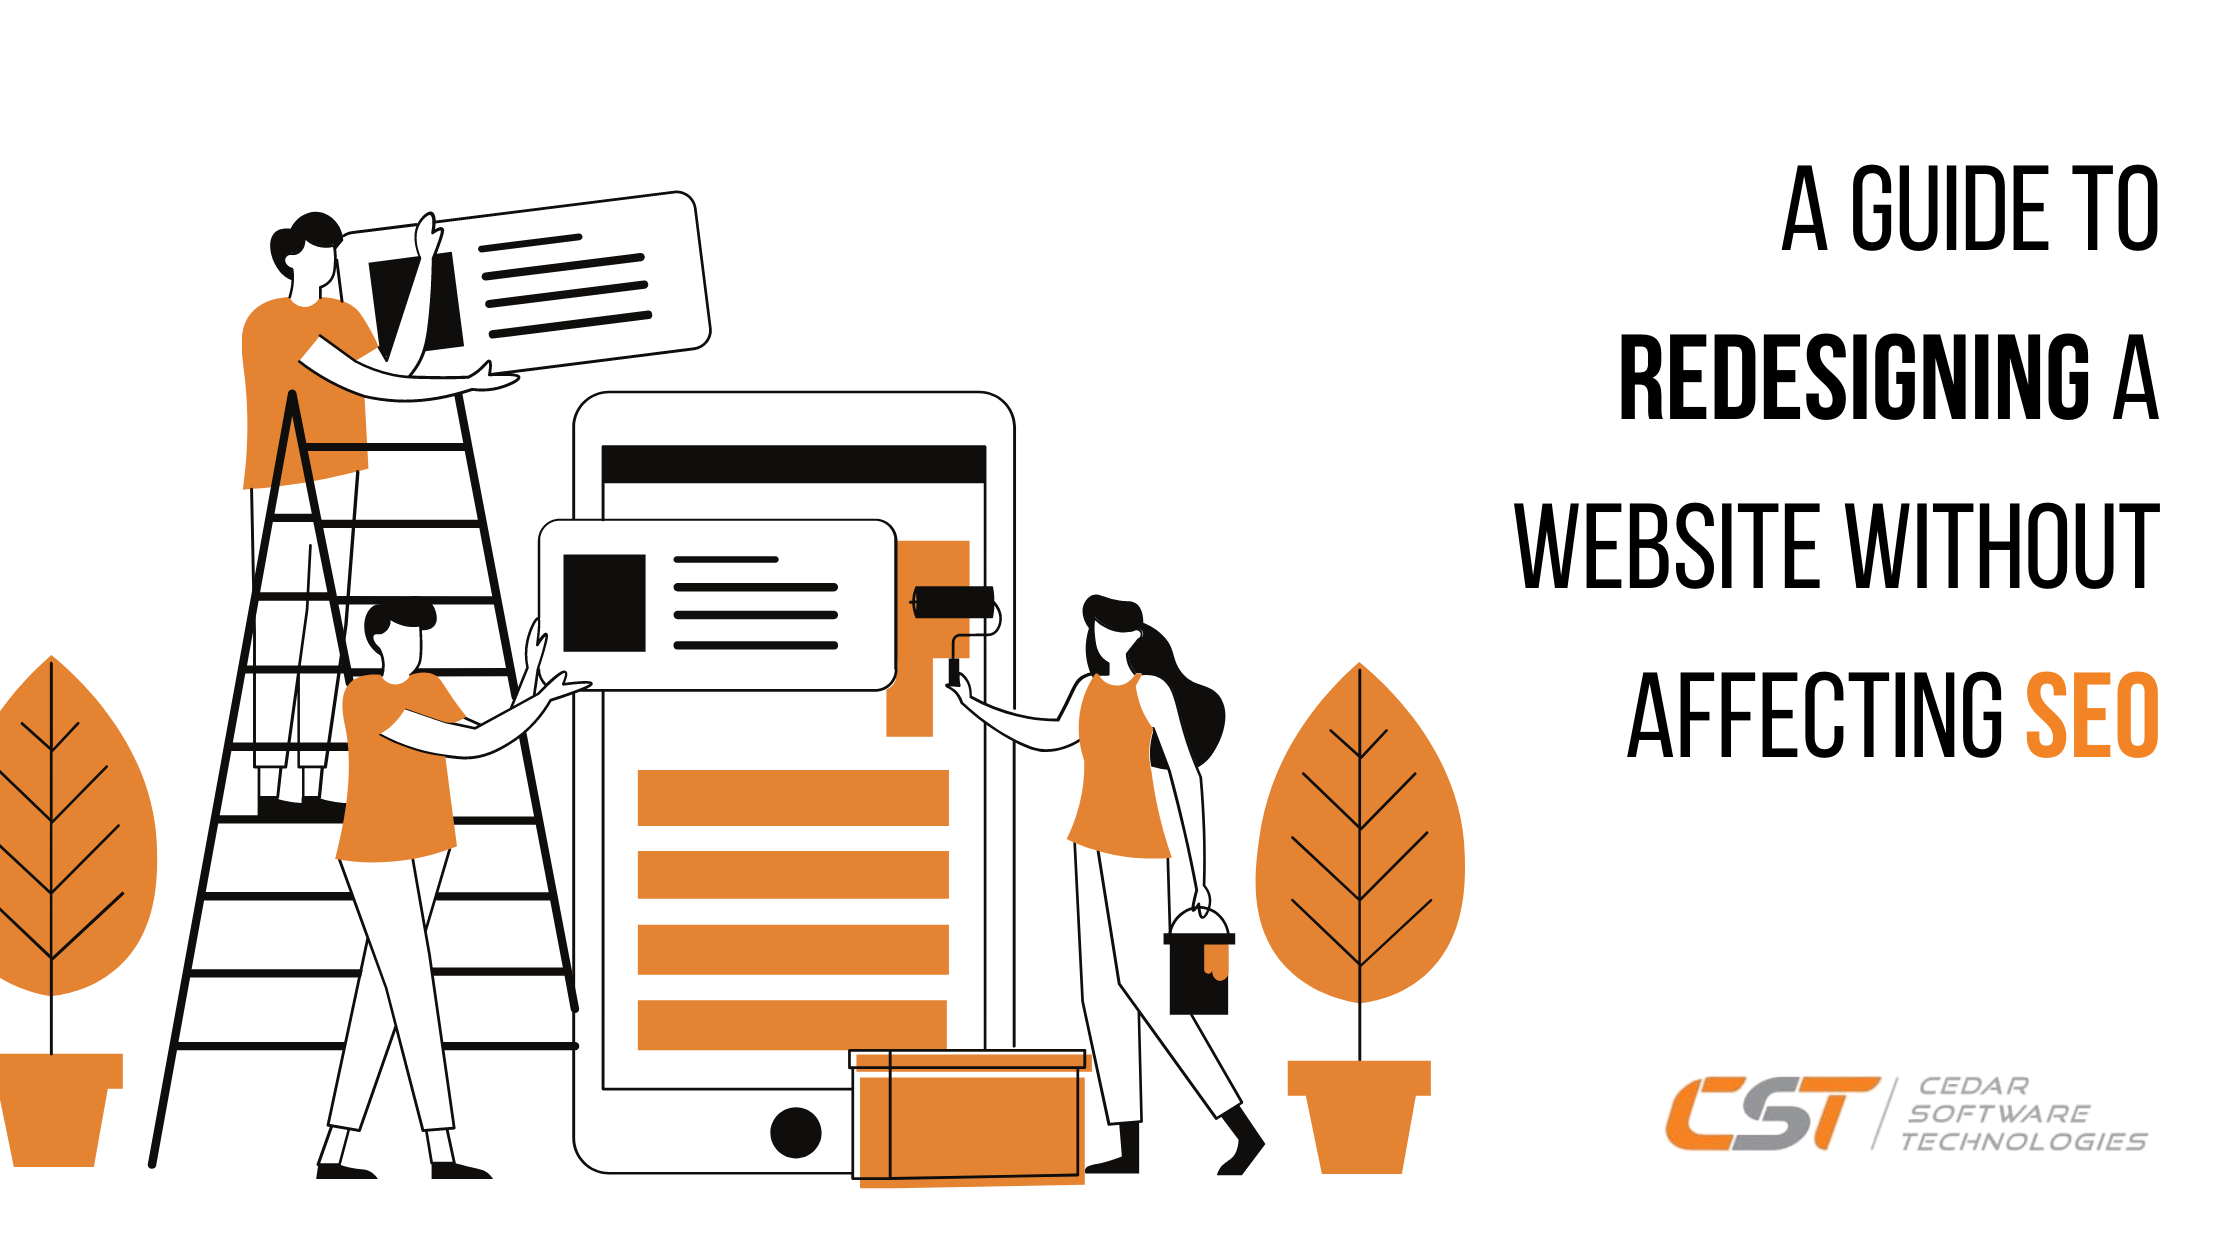 A guide to redesigning a website without affecting SEO